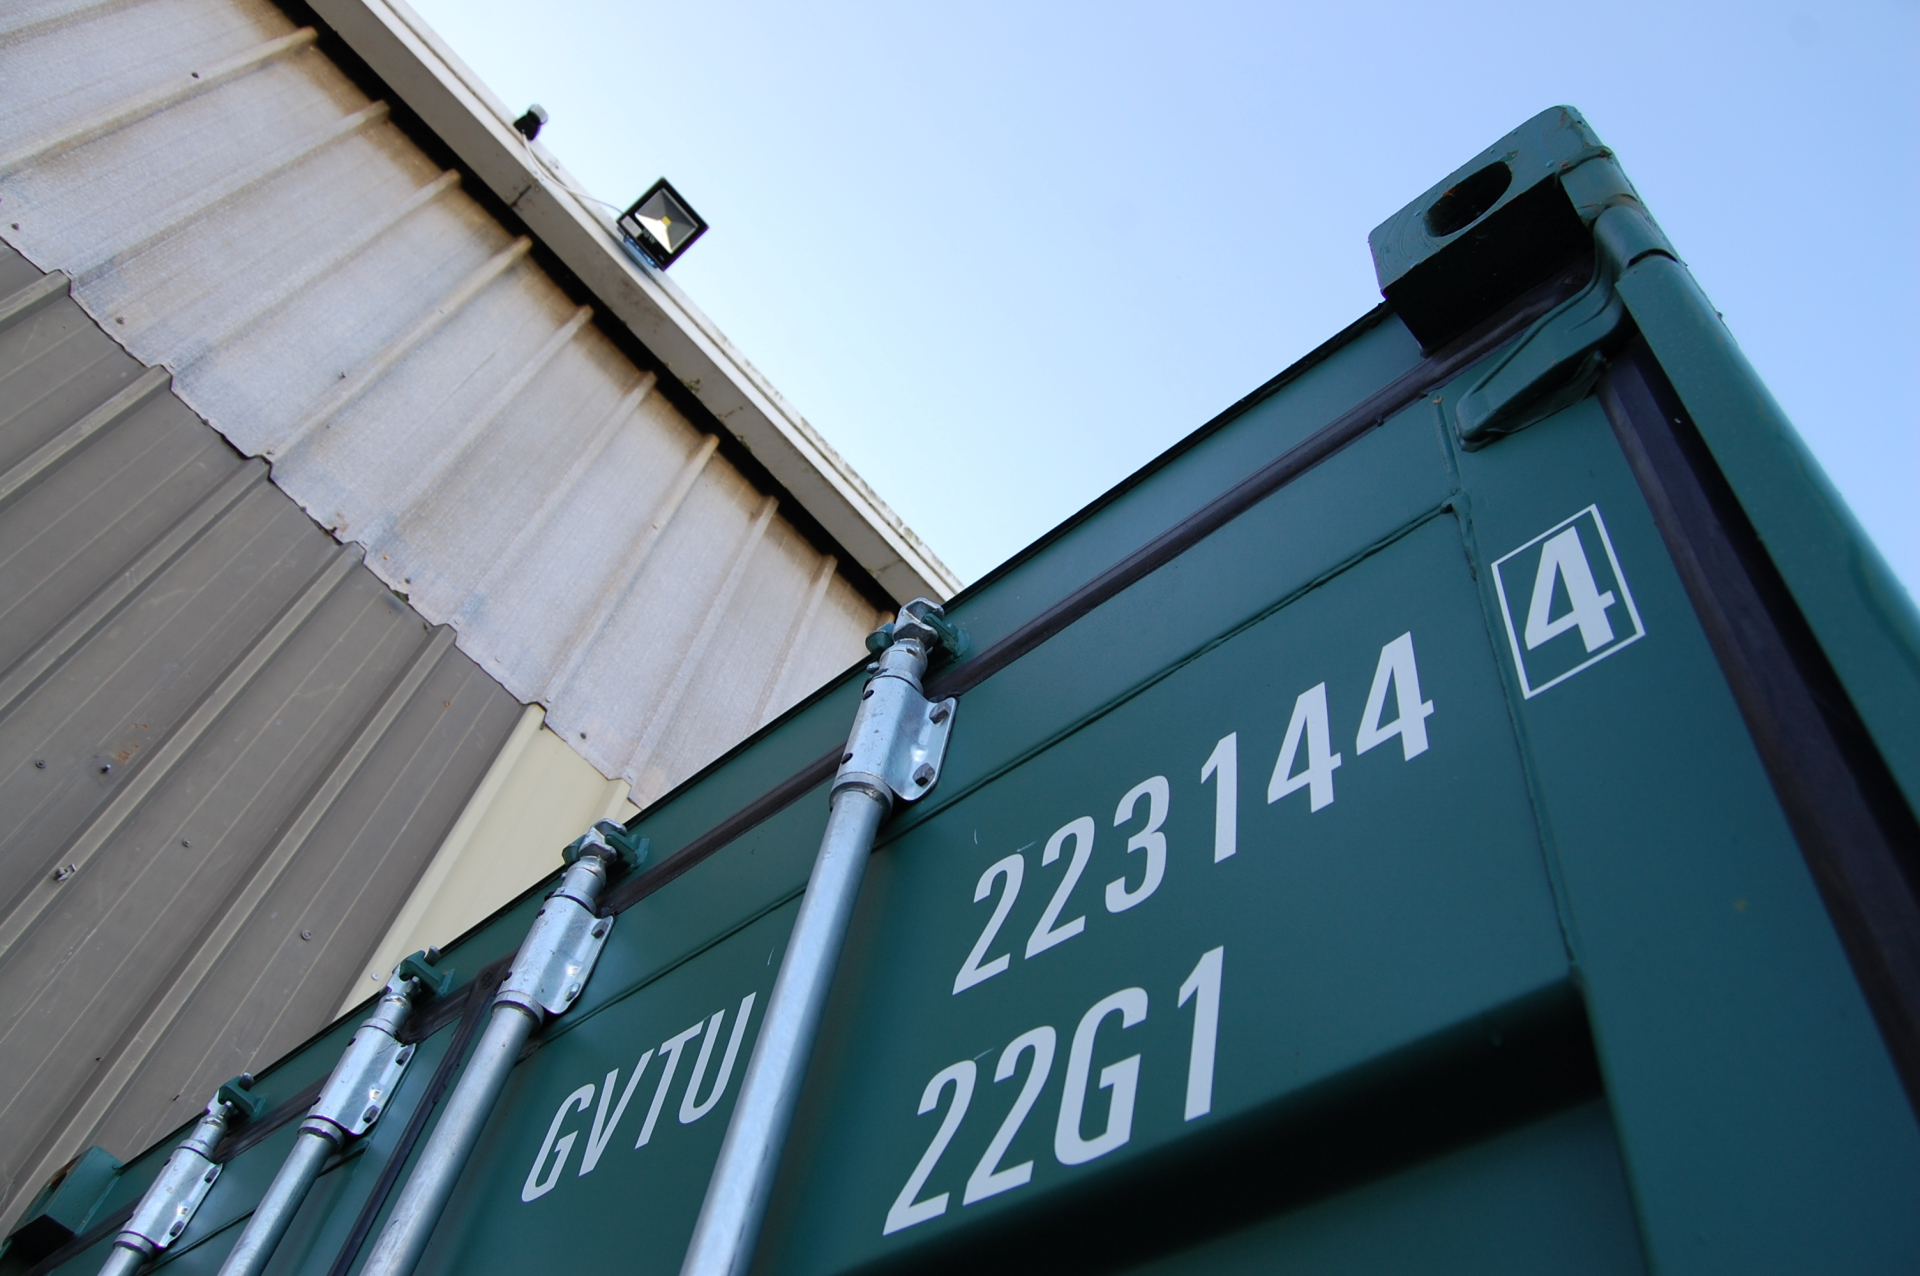 See the sturdiness and quality of our containers.